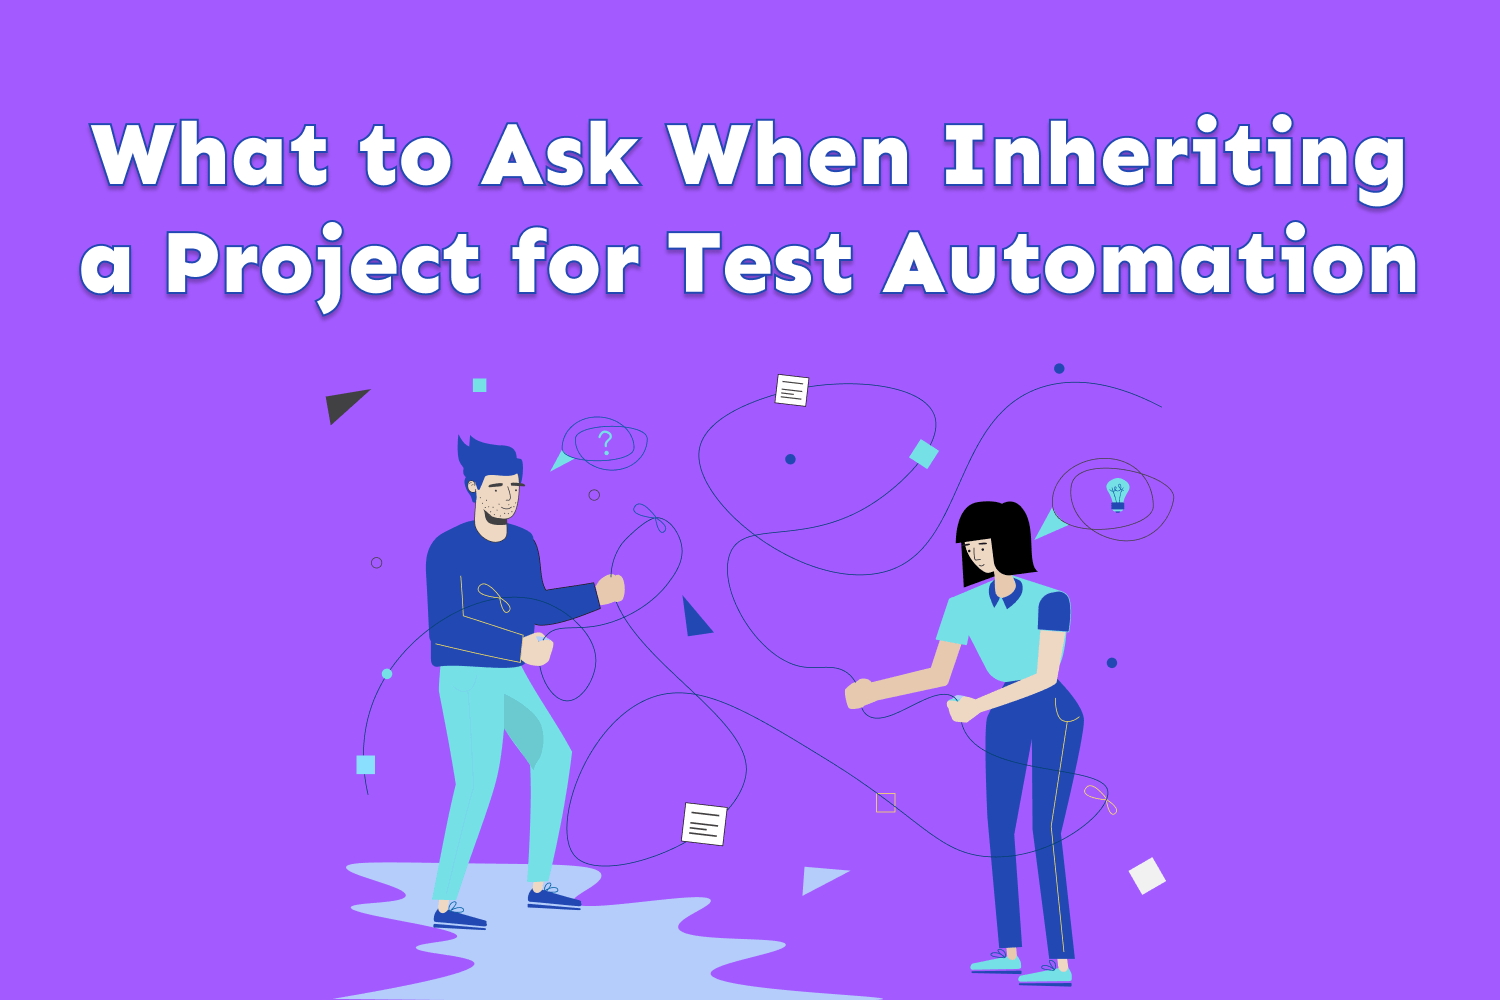 What to Ask When Inheriting a Project for Test Automation